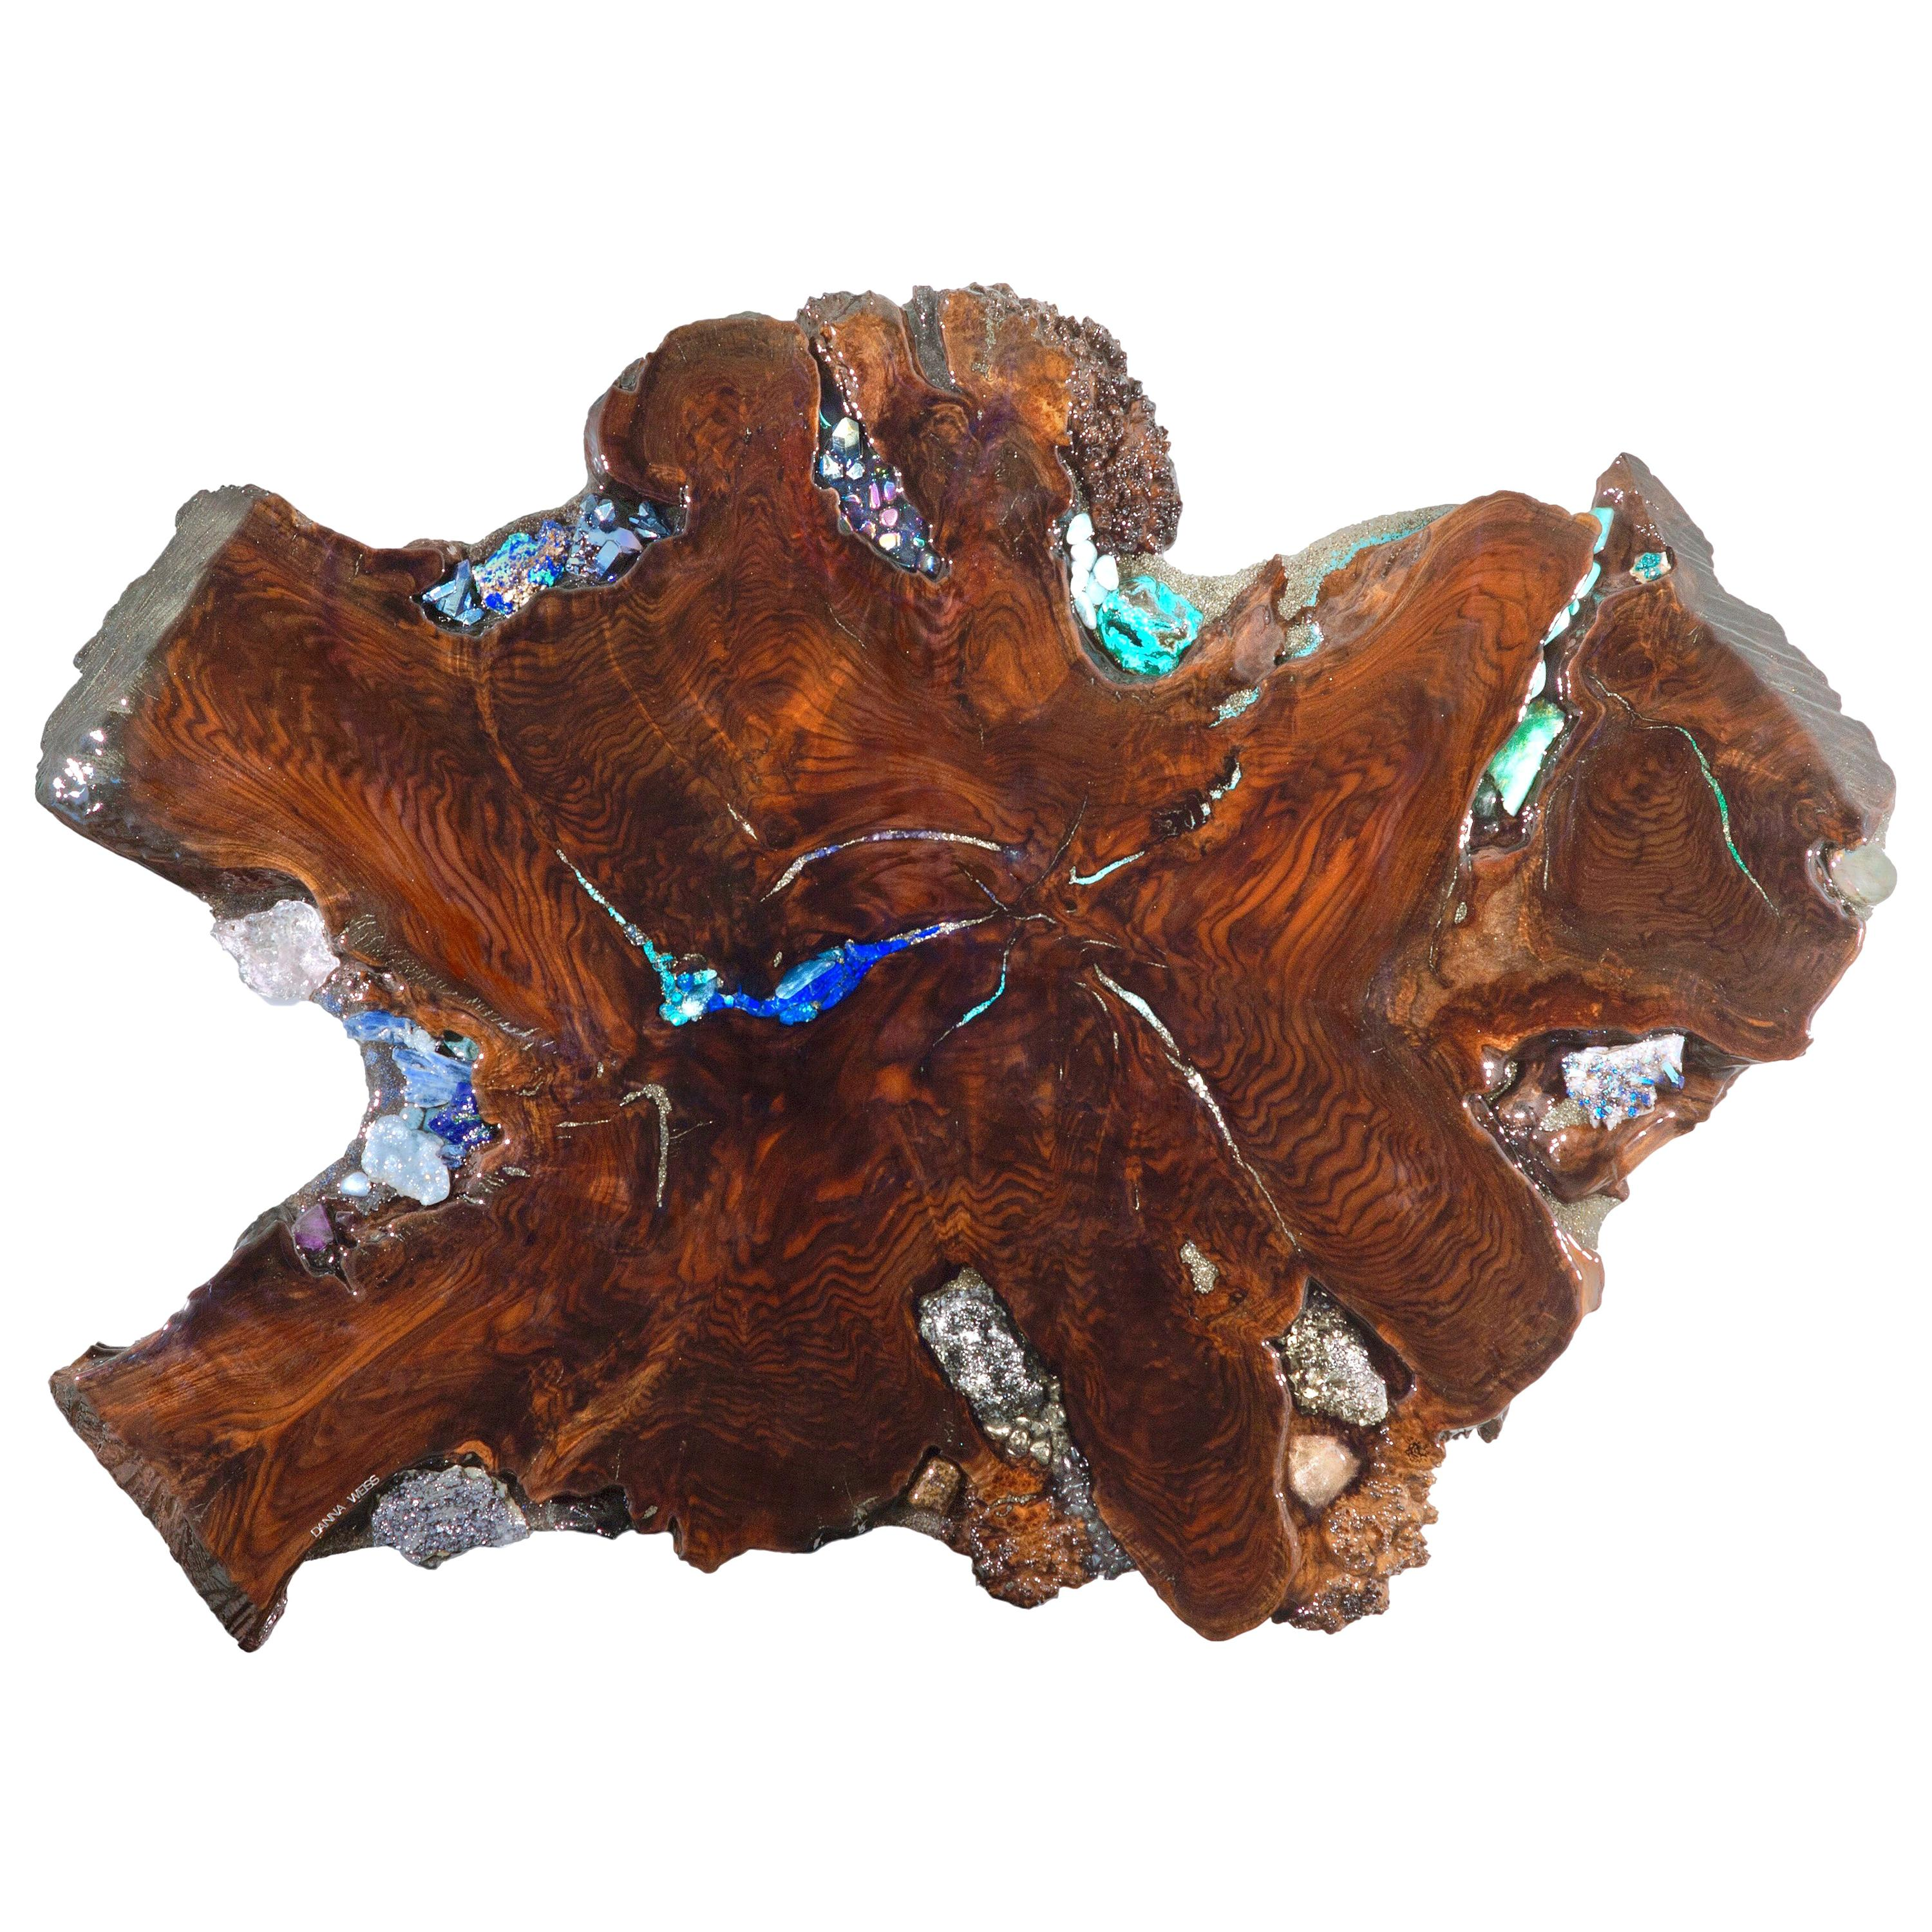 Walnut wood sculpture with crystal and gemstone inlays